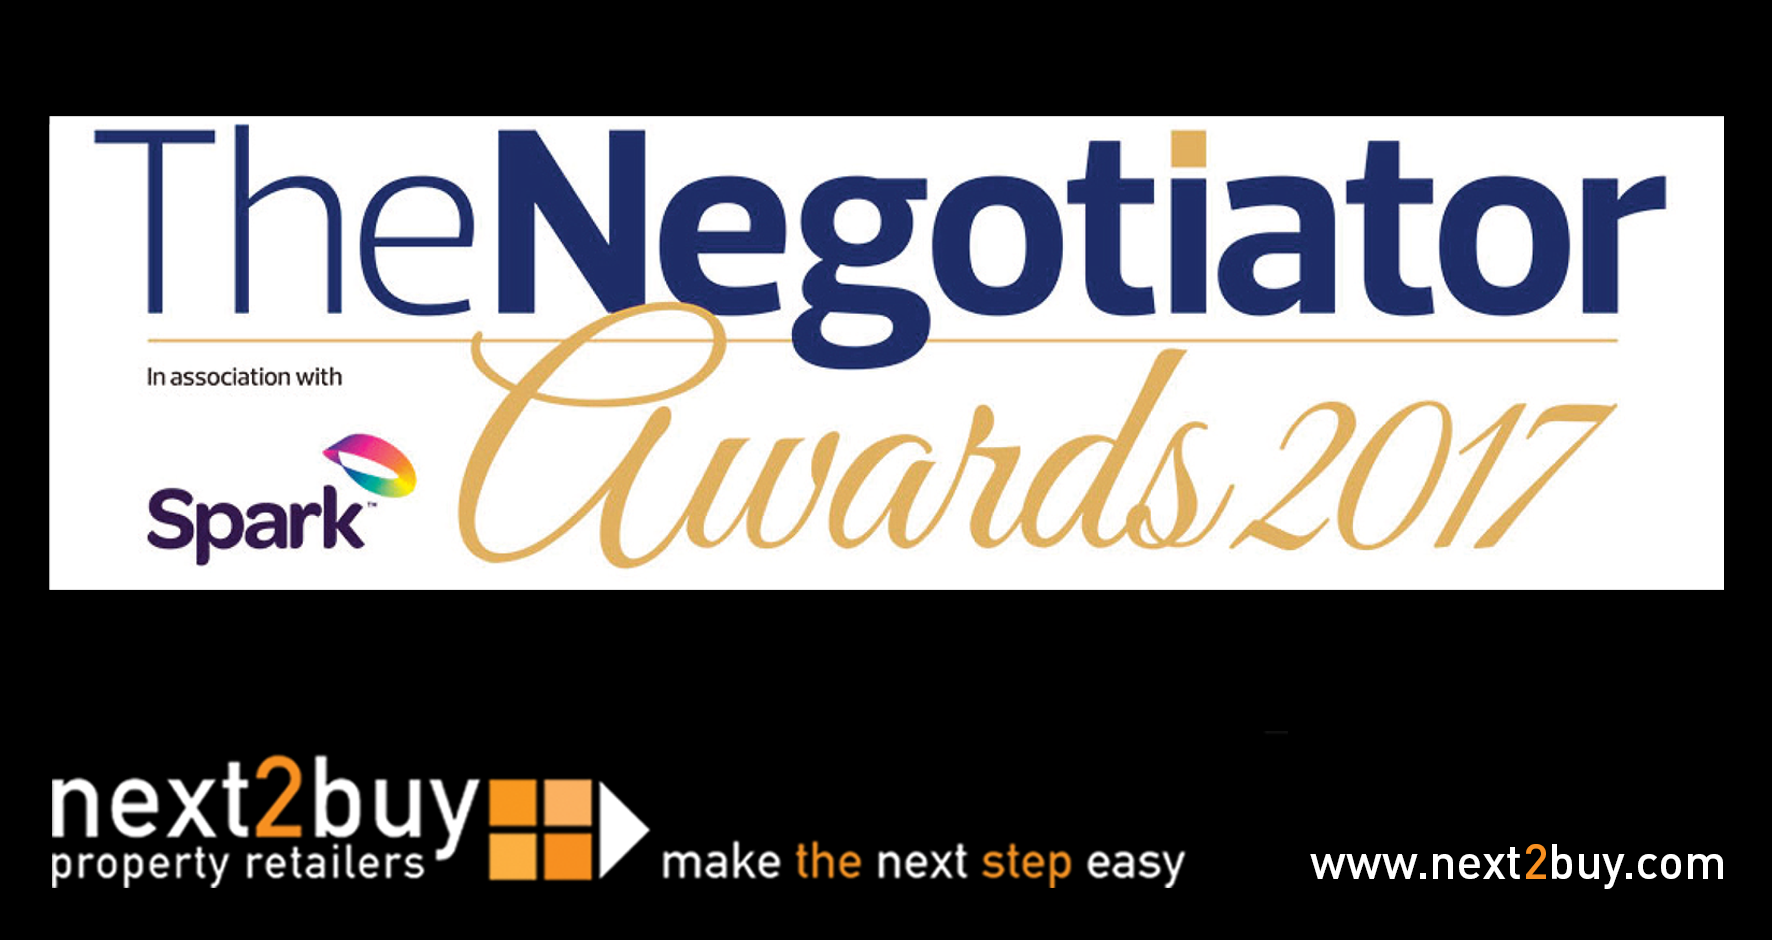 Negotiator Awards 2017